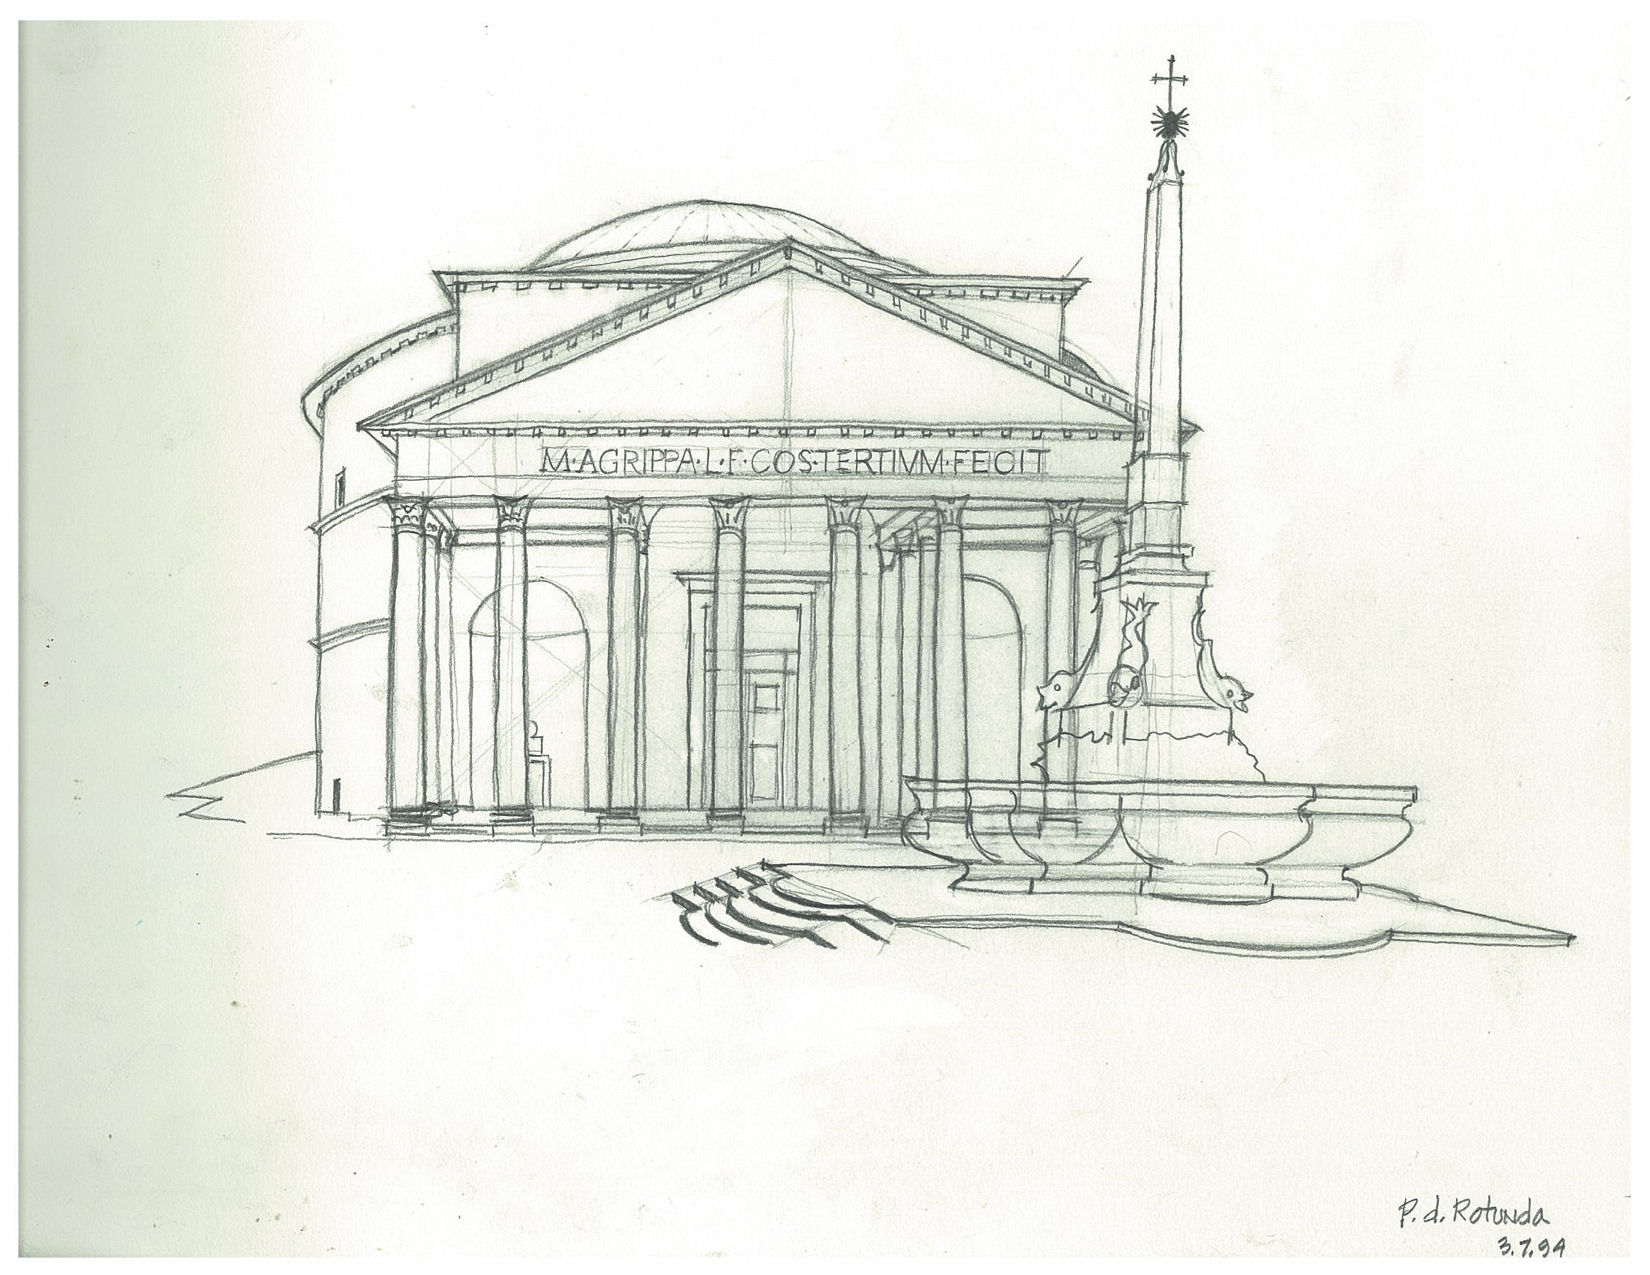 1984 - 4A Pantheon rotunda 8x11.jpg